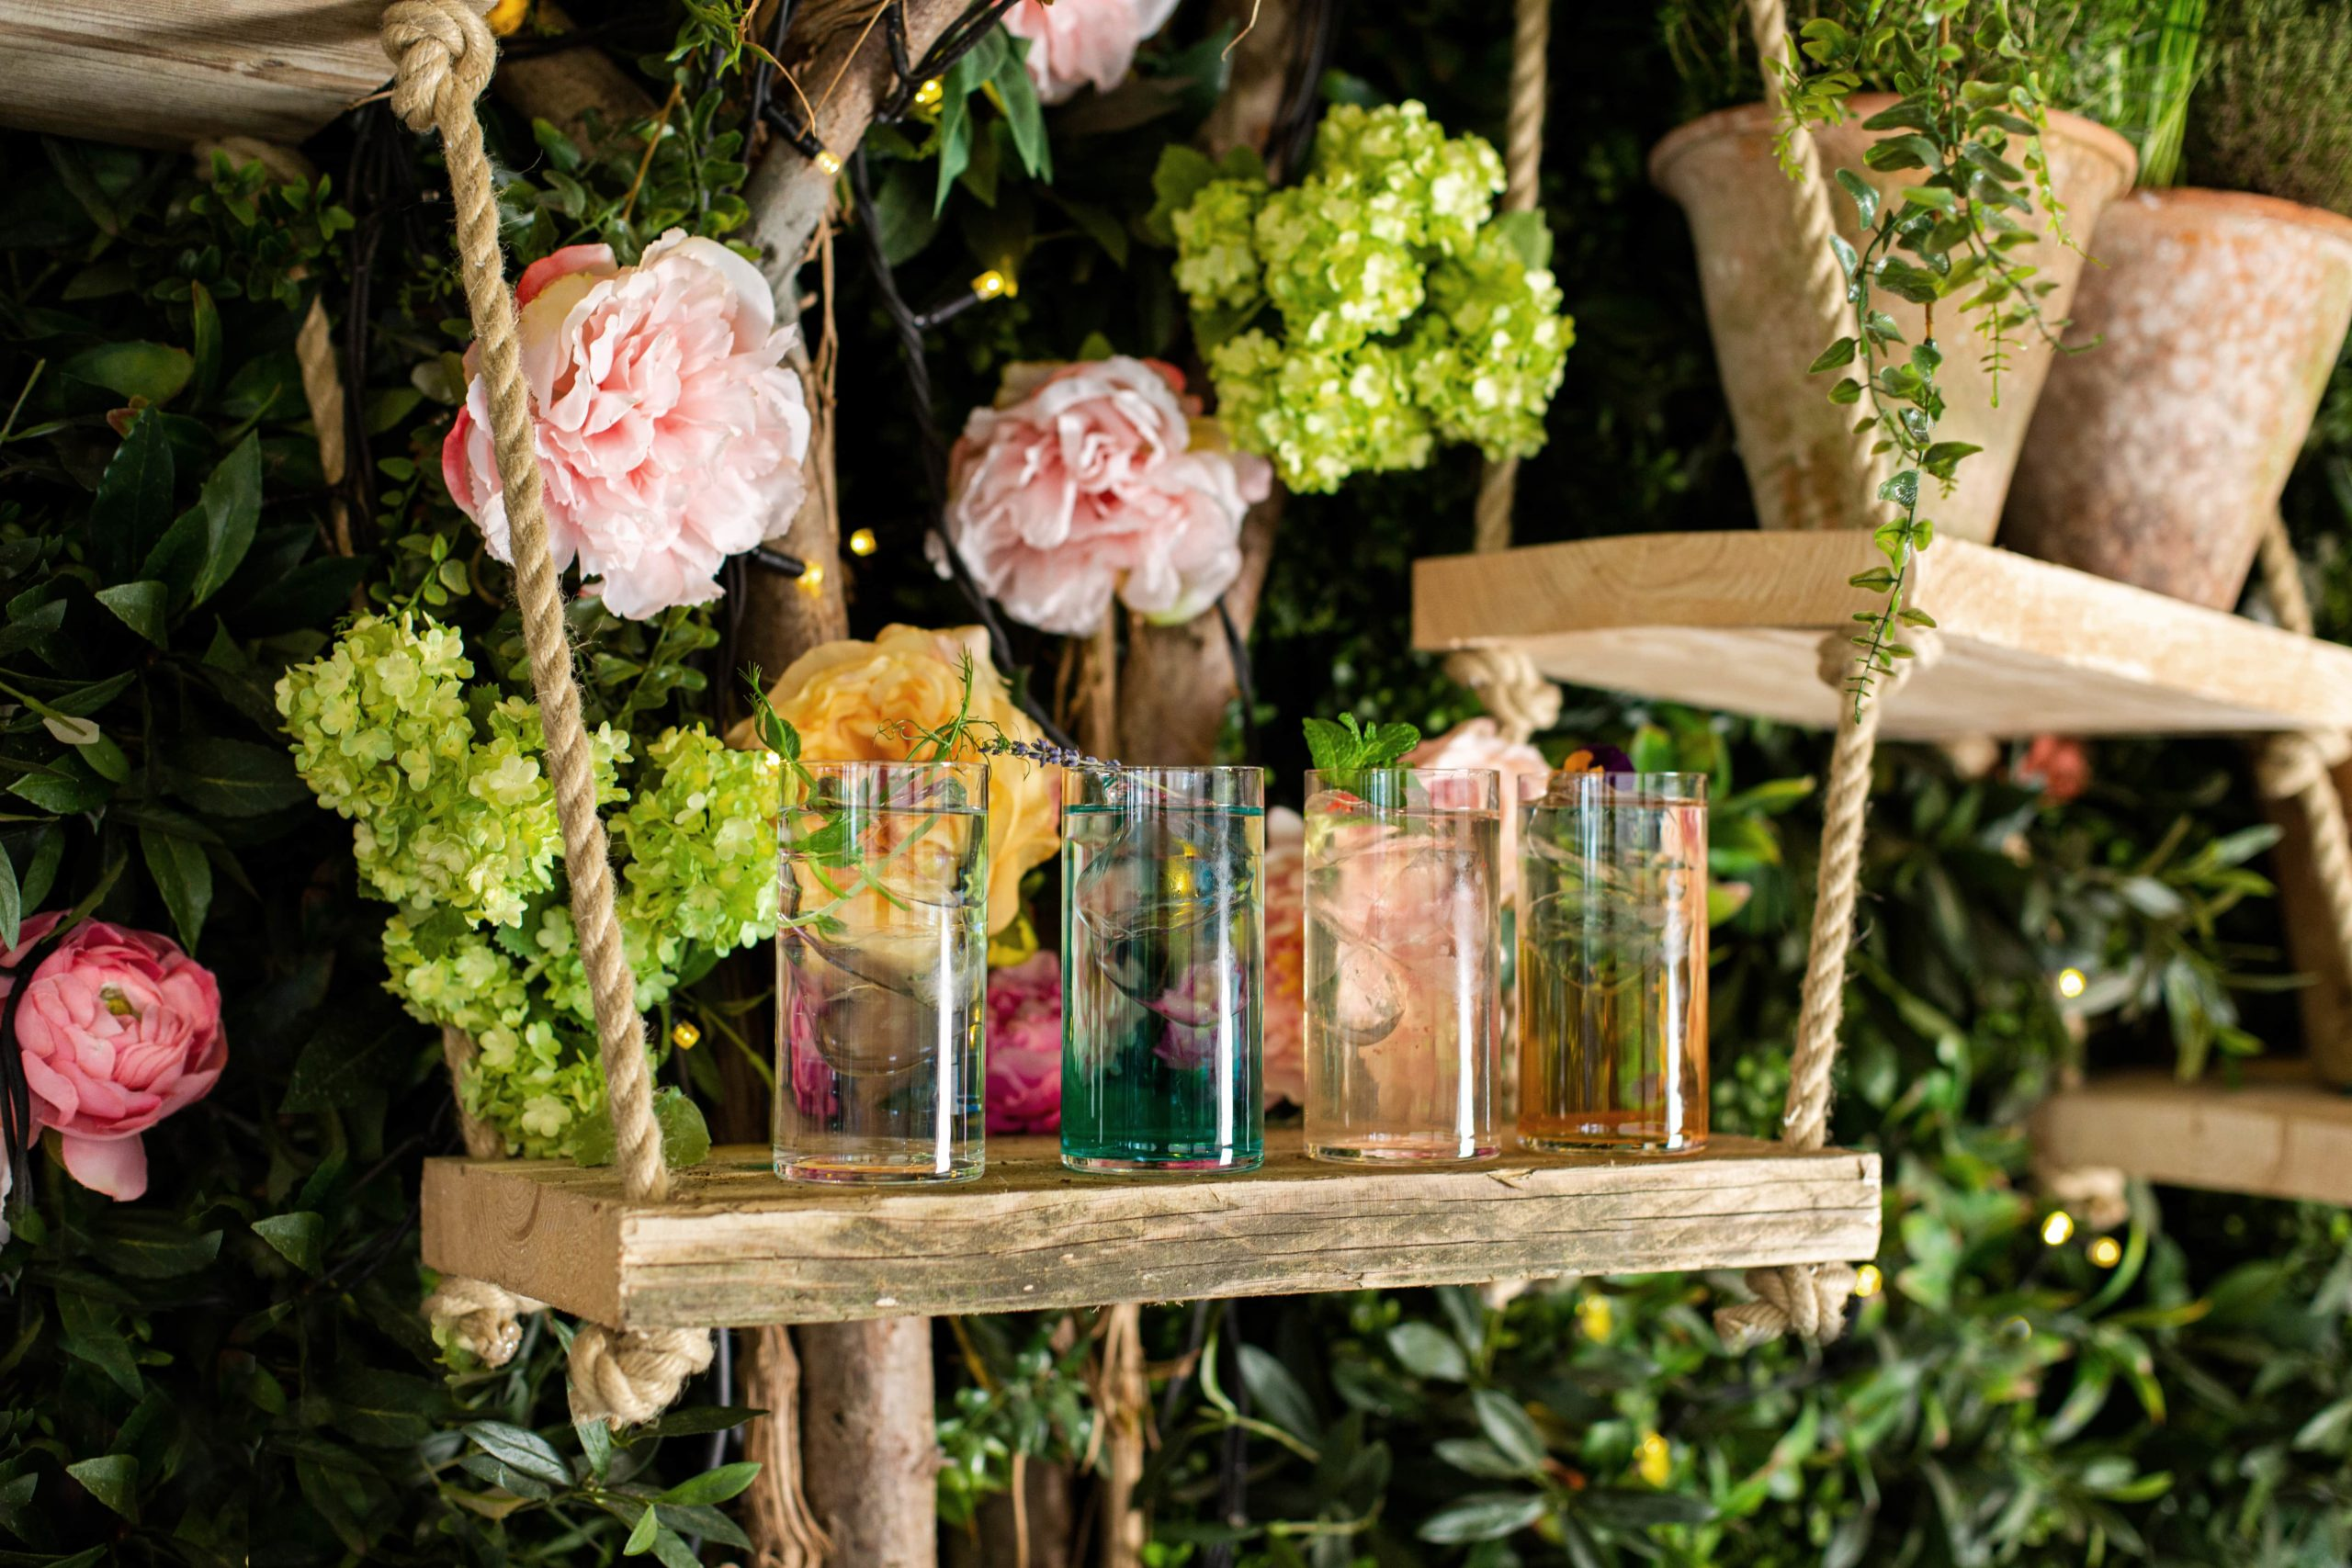 The Luxe List March 2020: Dalloway Terrace's Quintessentially English Garden